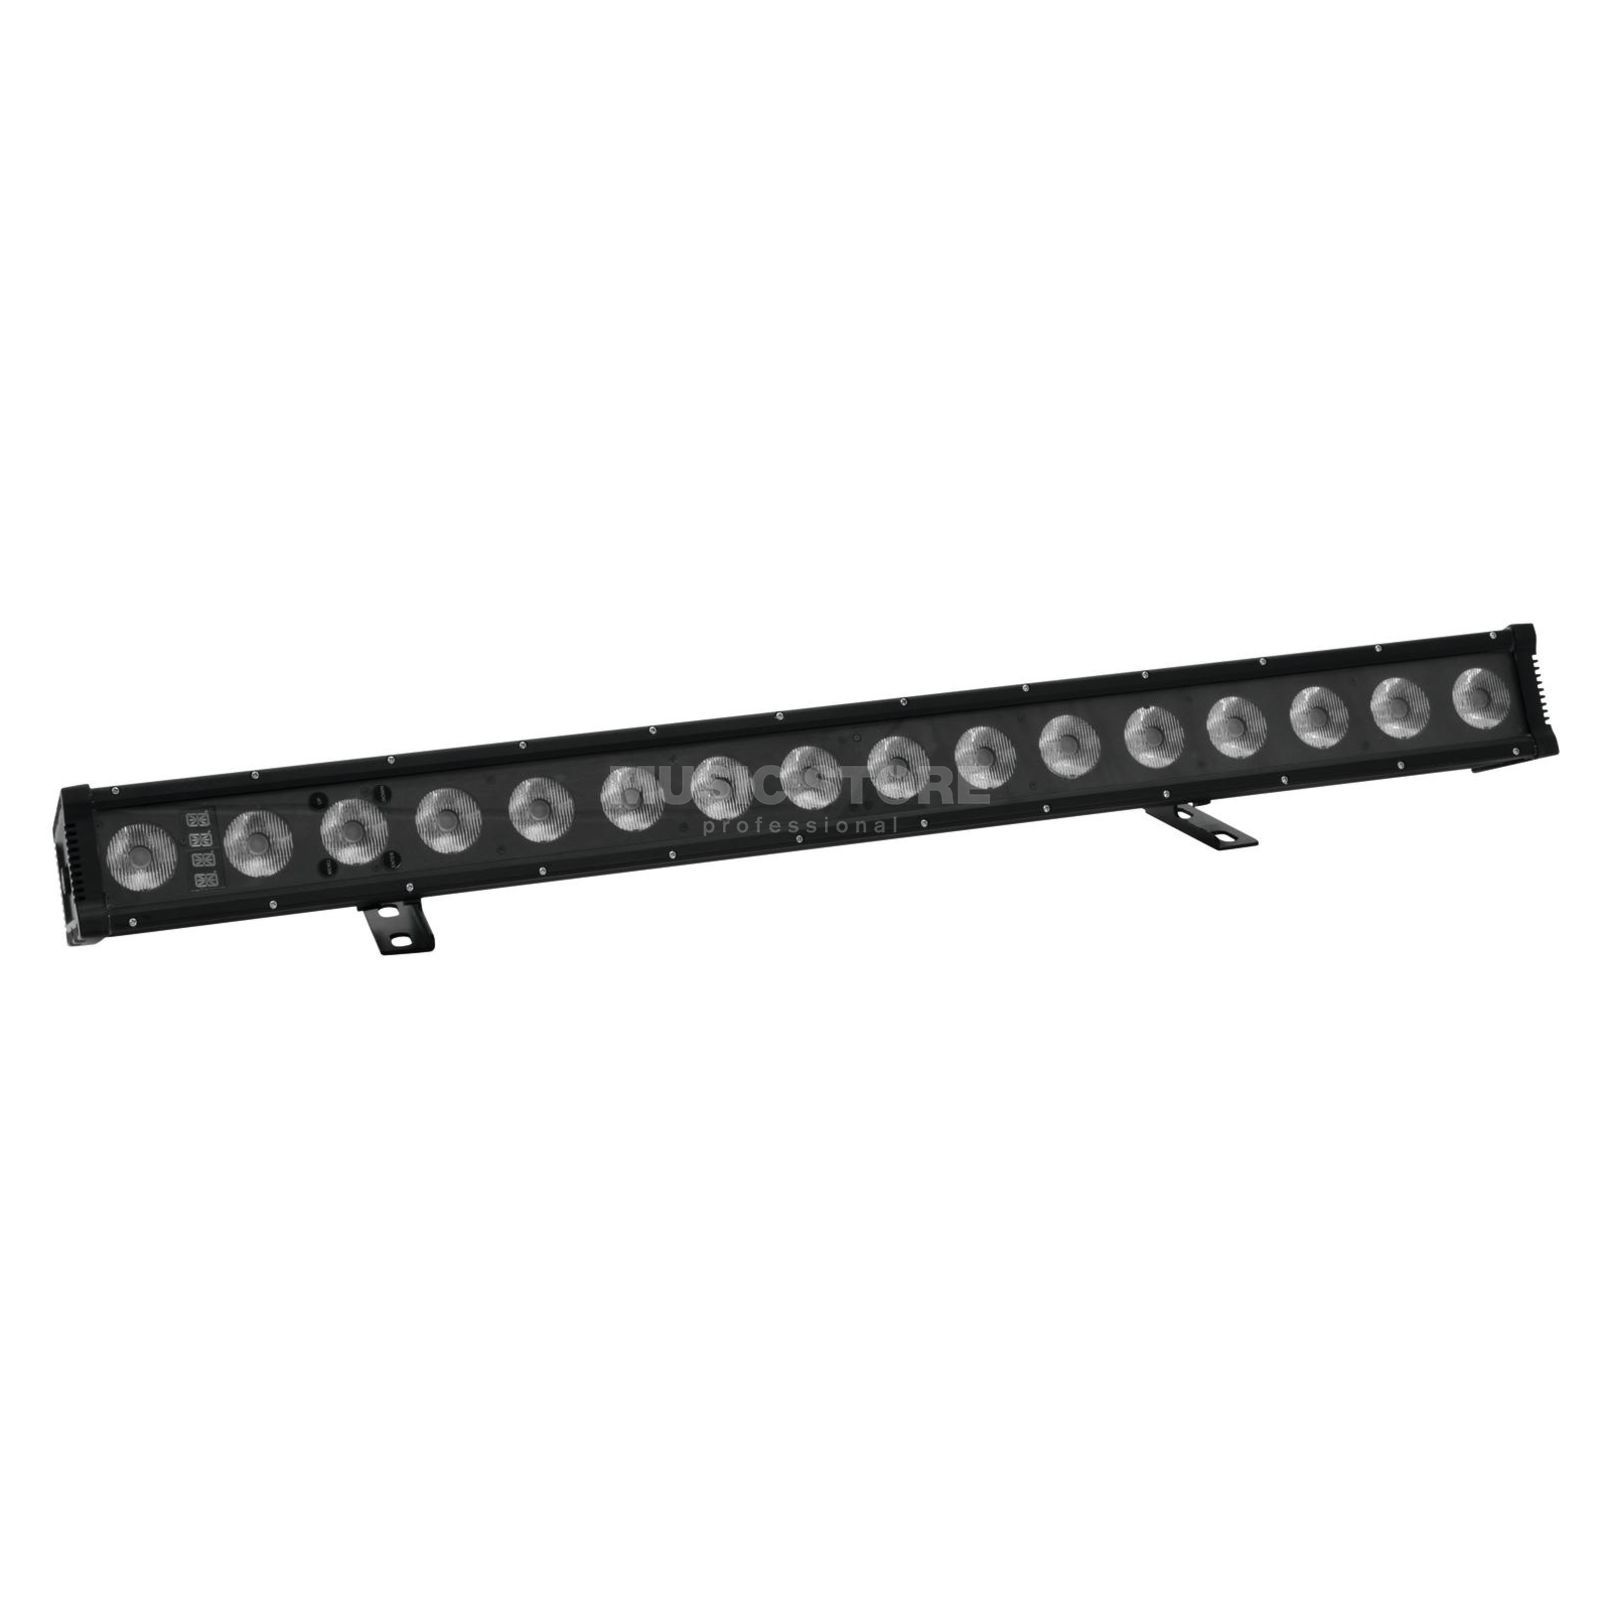 Eurolite LED IP T2000 WW Leiste IP65 mit 5-W-LEDs / 3200K Produktbillede